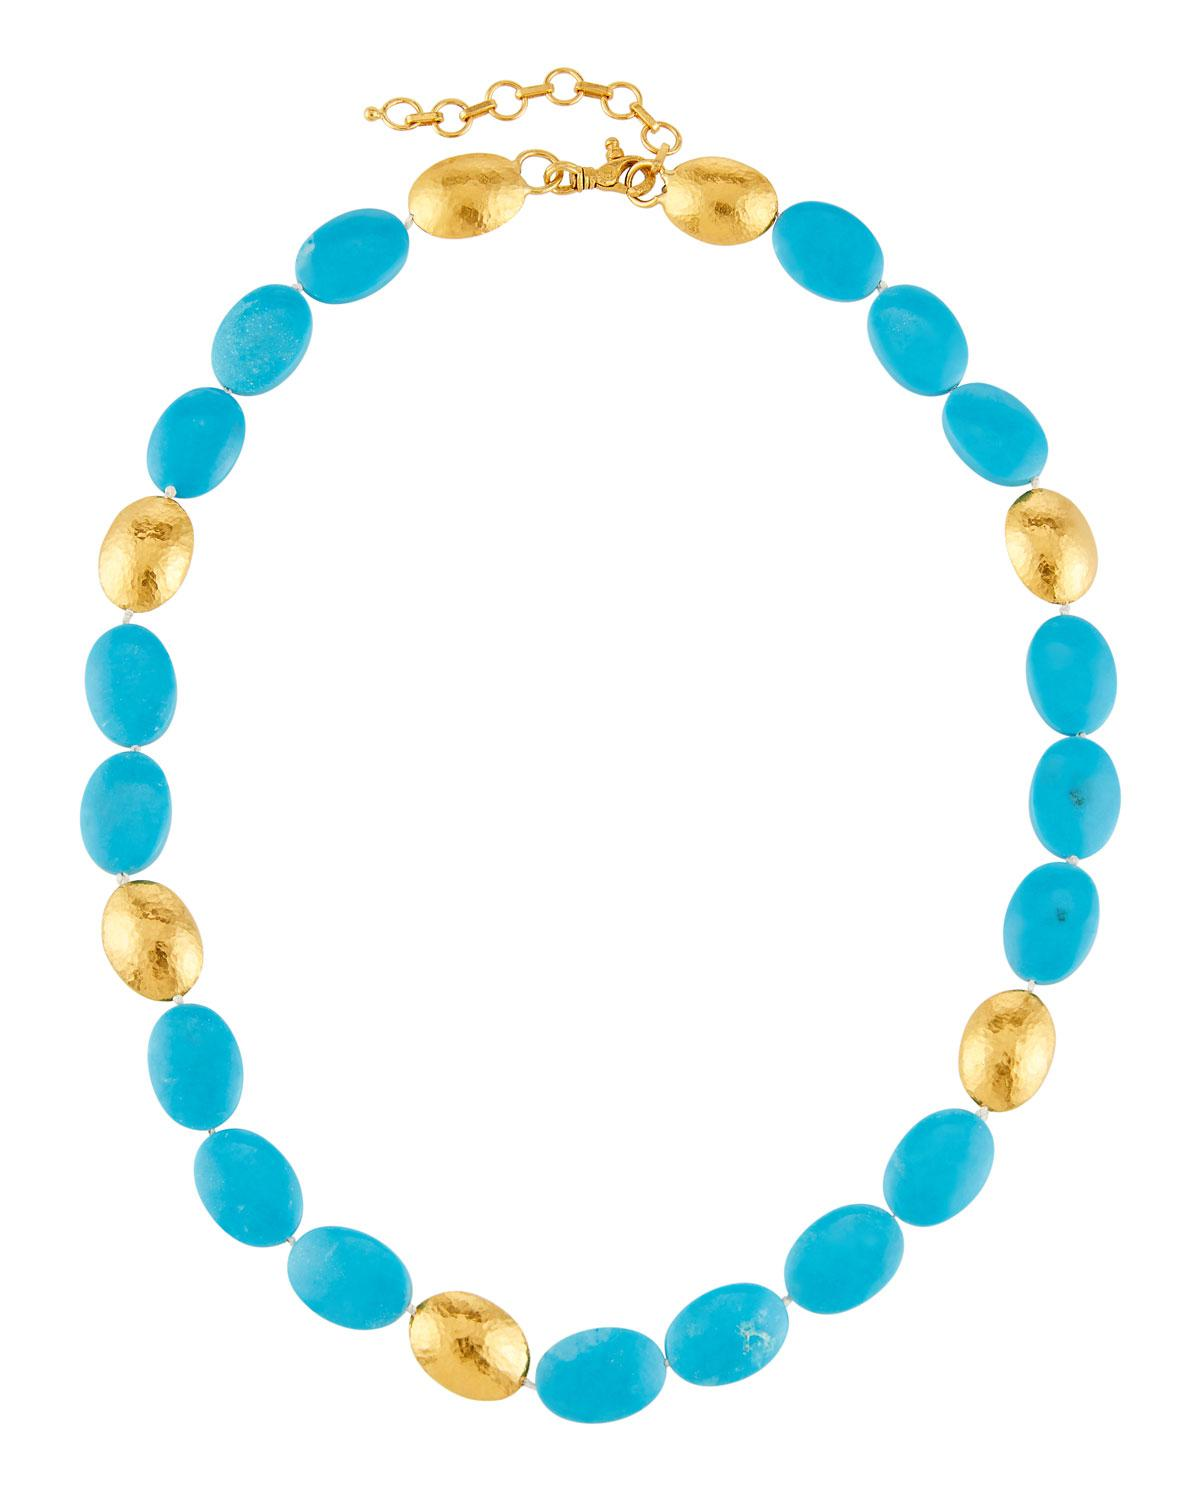 Gurhan 24k Waterfall Turquoise Necklace XSA77